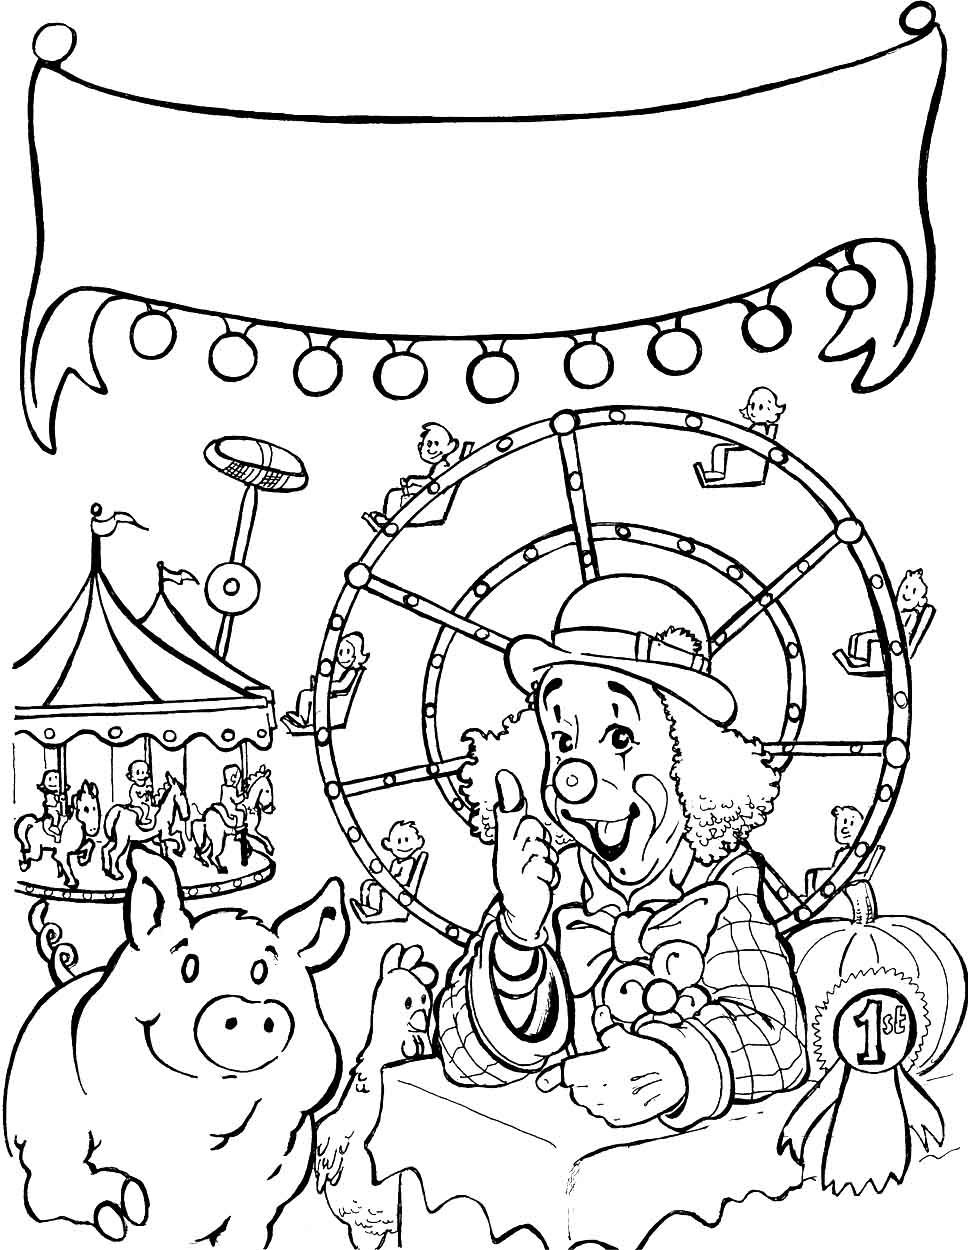 Otsego County Fair | Coloring Contest - Gaylord Michigan | Ag ...